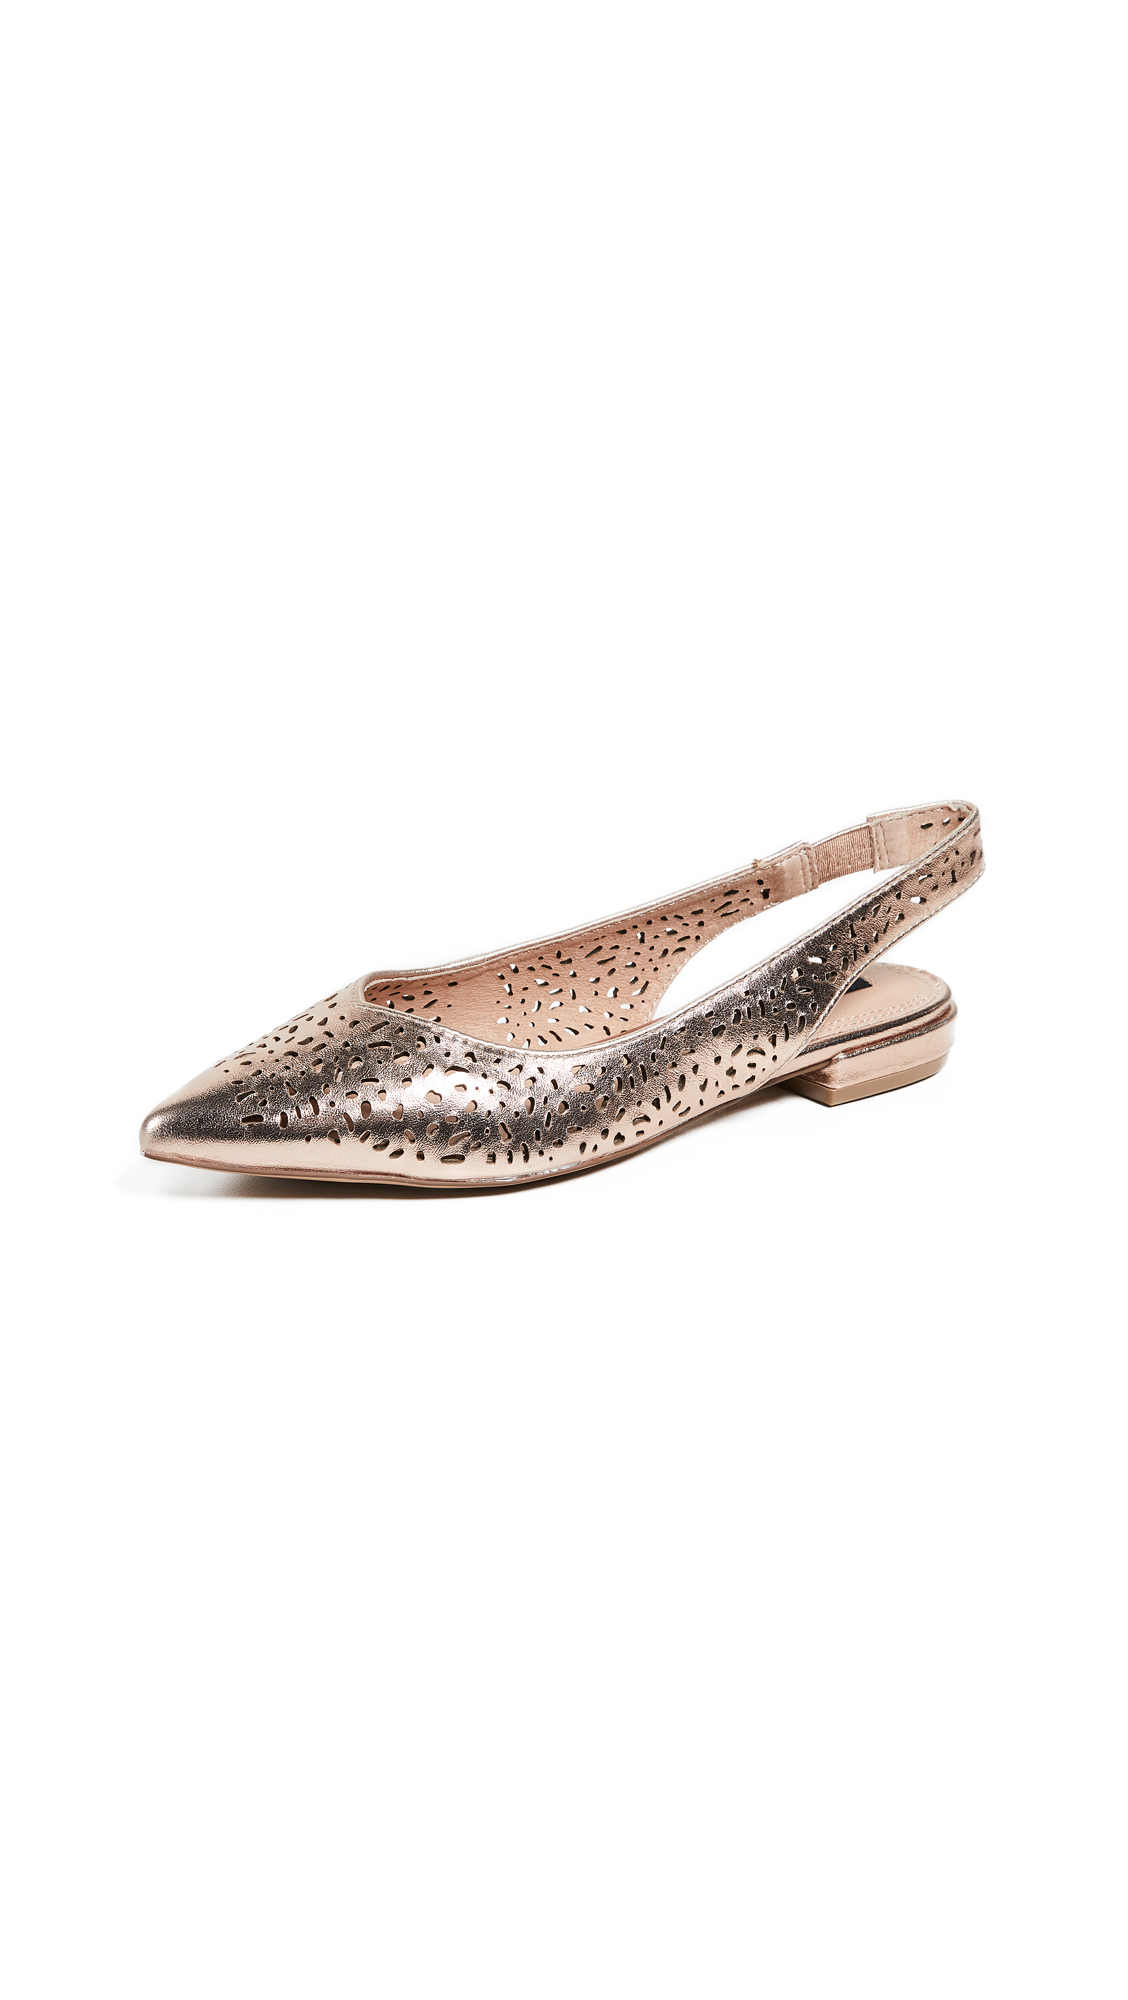 Steven Lourdes Point Toe Slingback Flats - Rose Gold